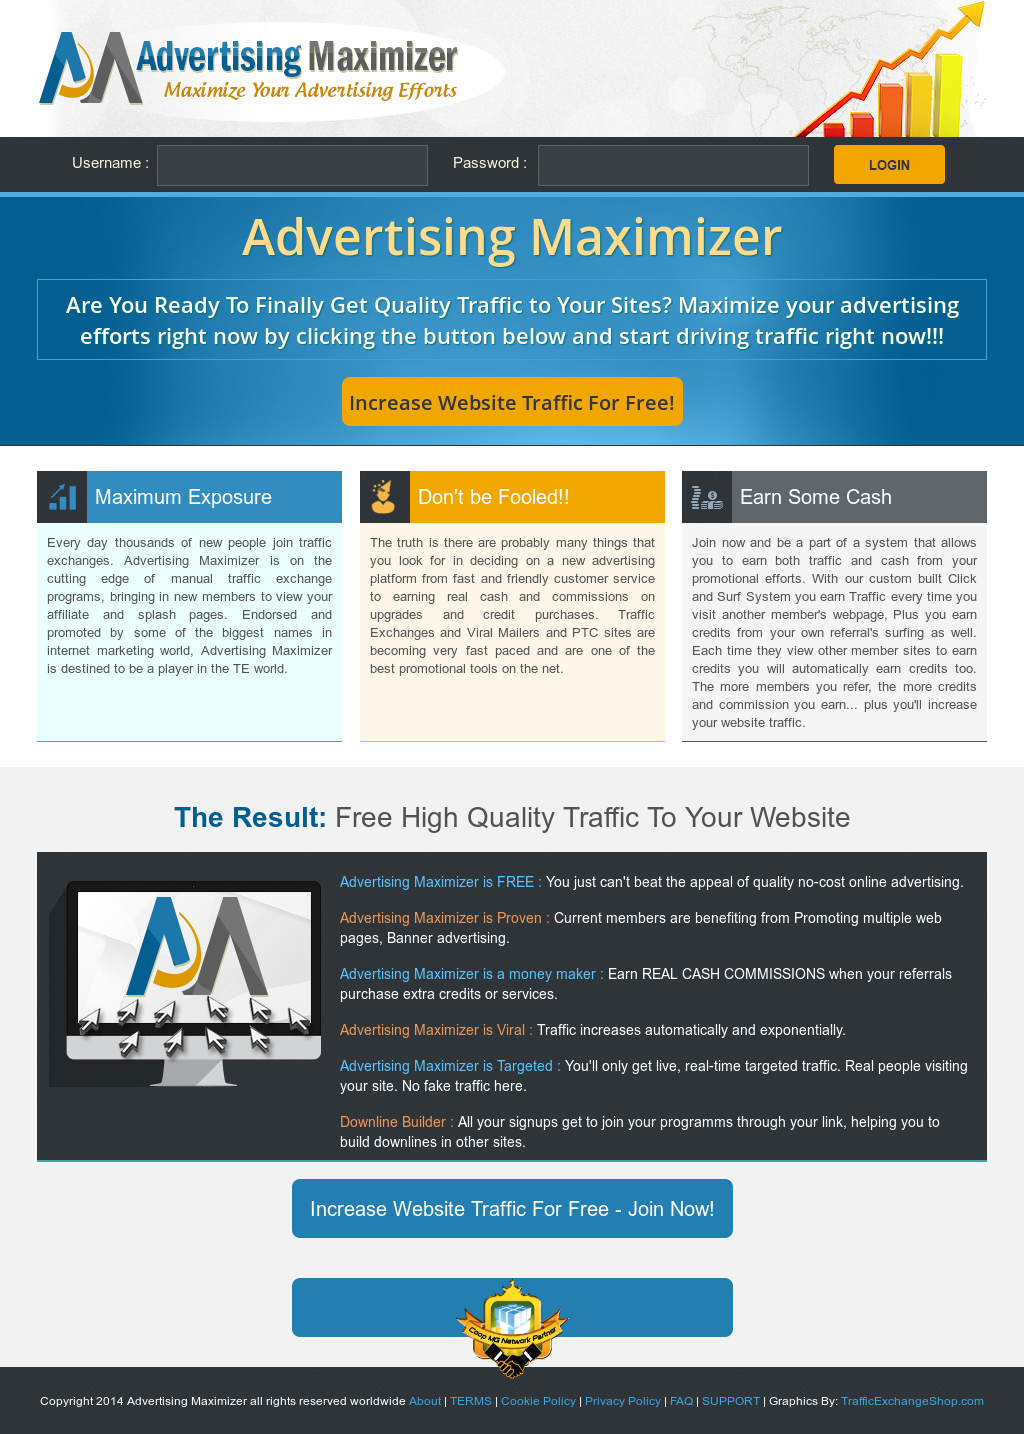 Advertising Maximizer Competitors, Revenue and Employees - Owler